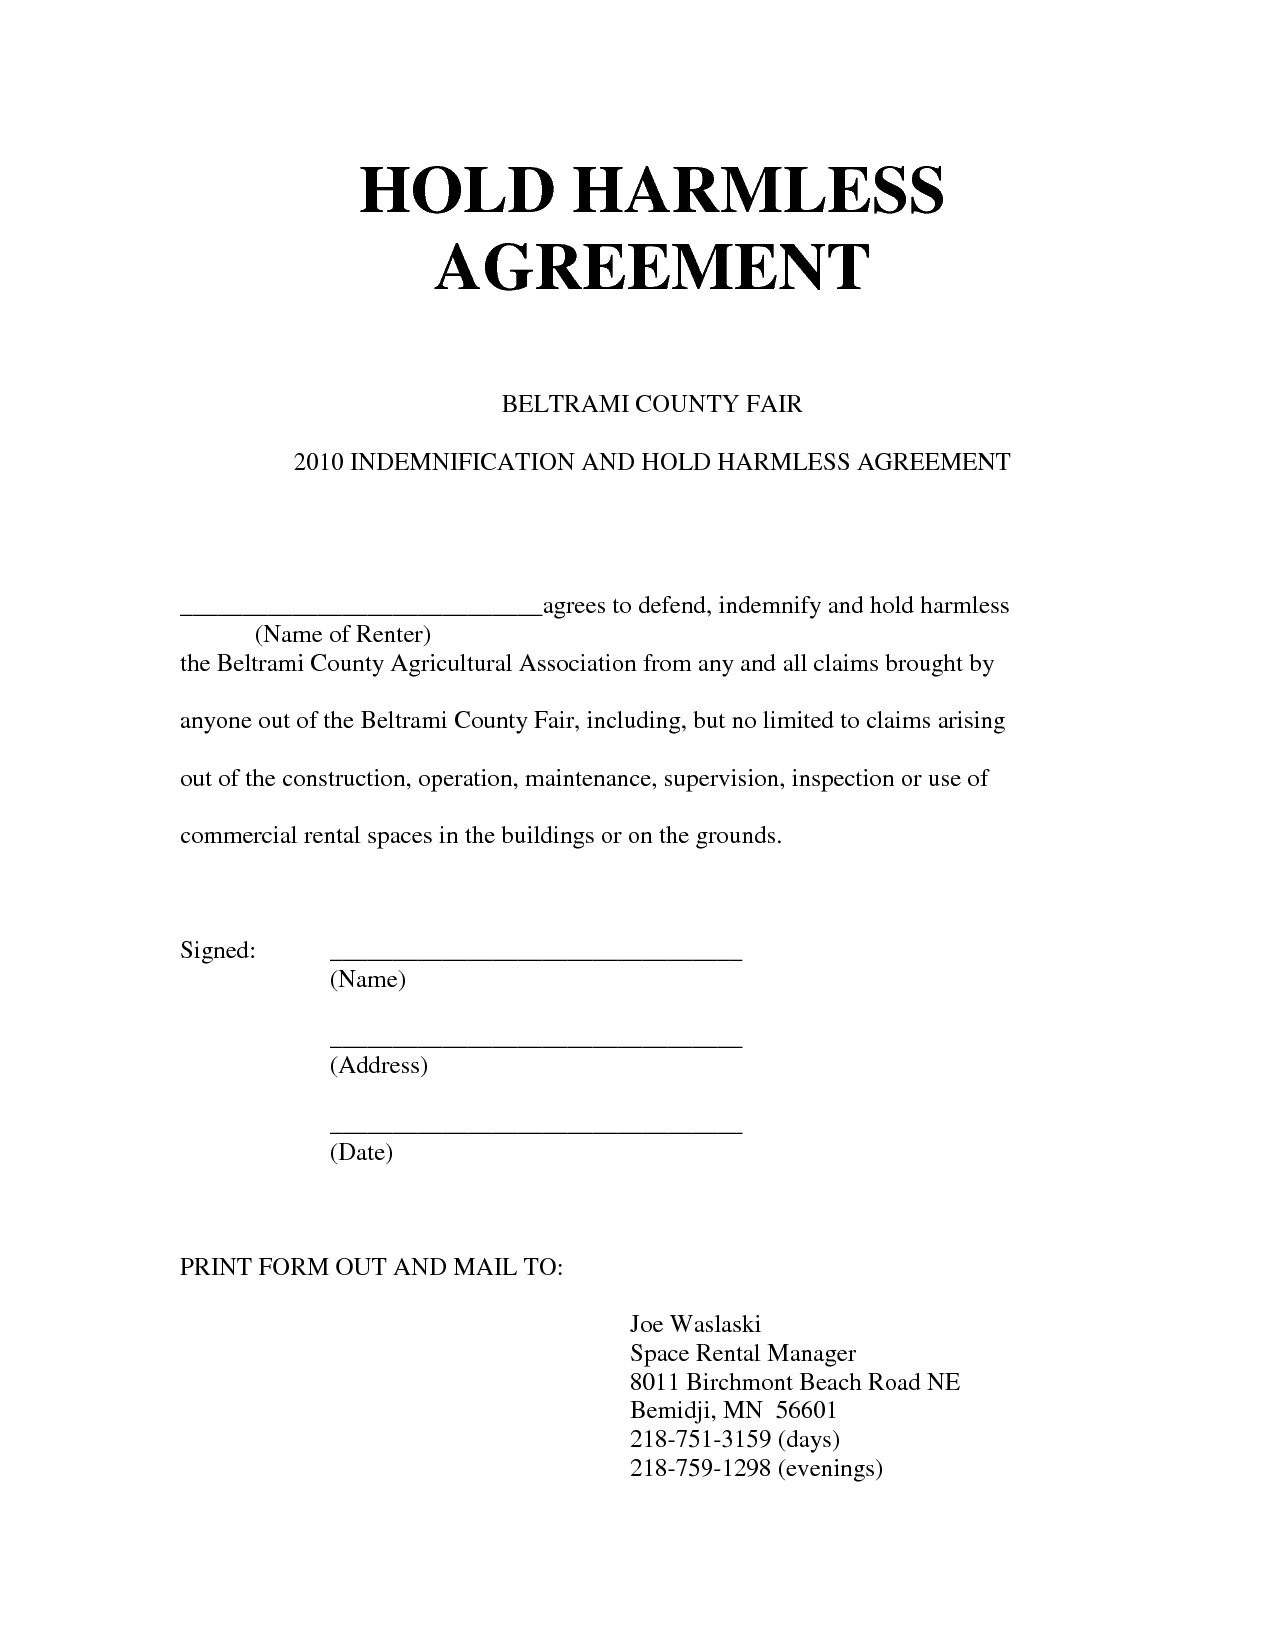 Hold Harmless Letter Template - Hold Harmless Agreement form